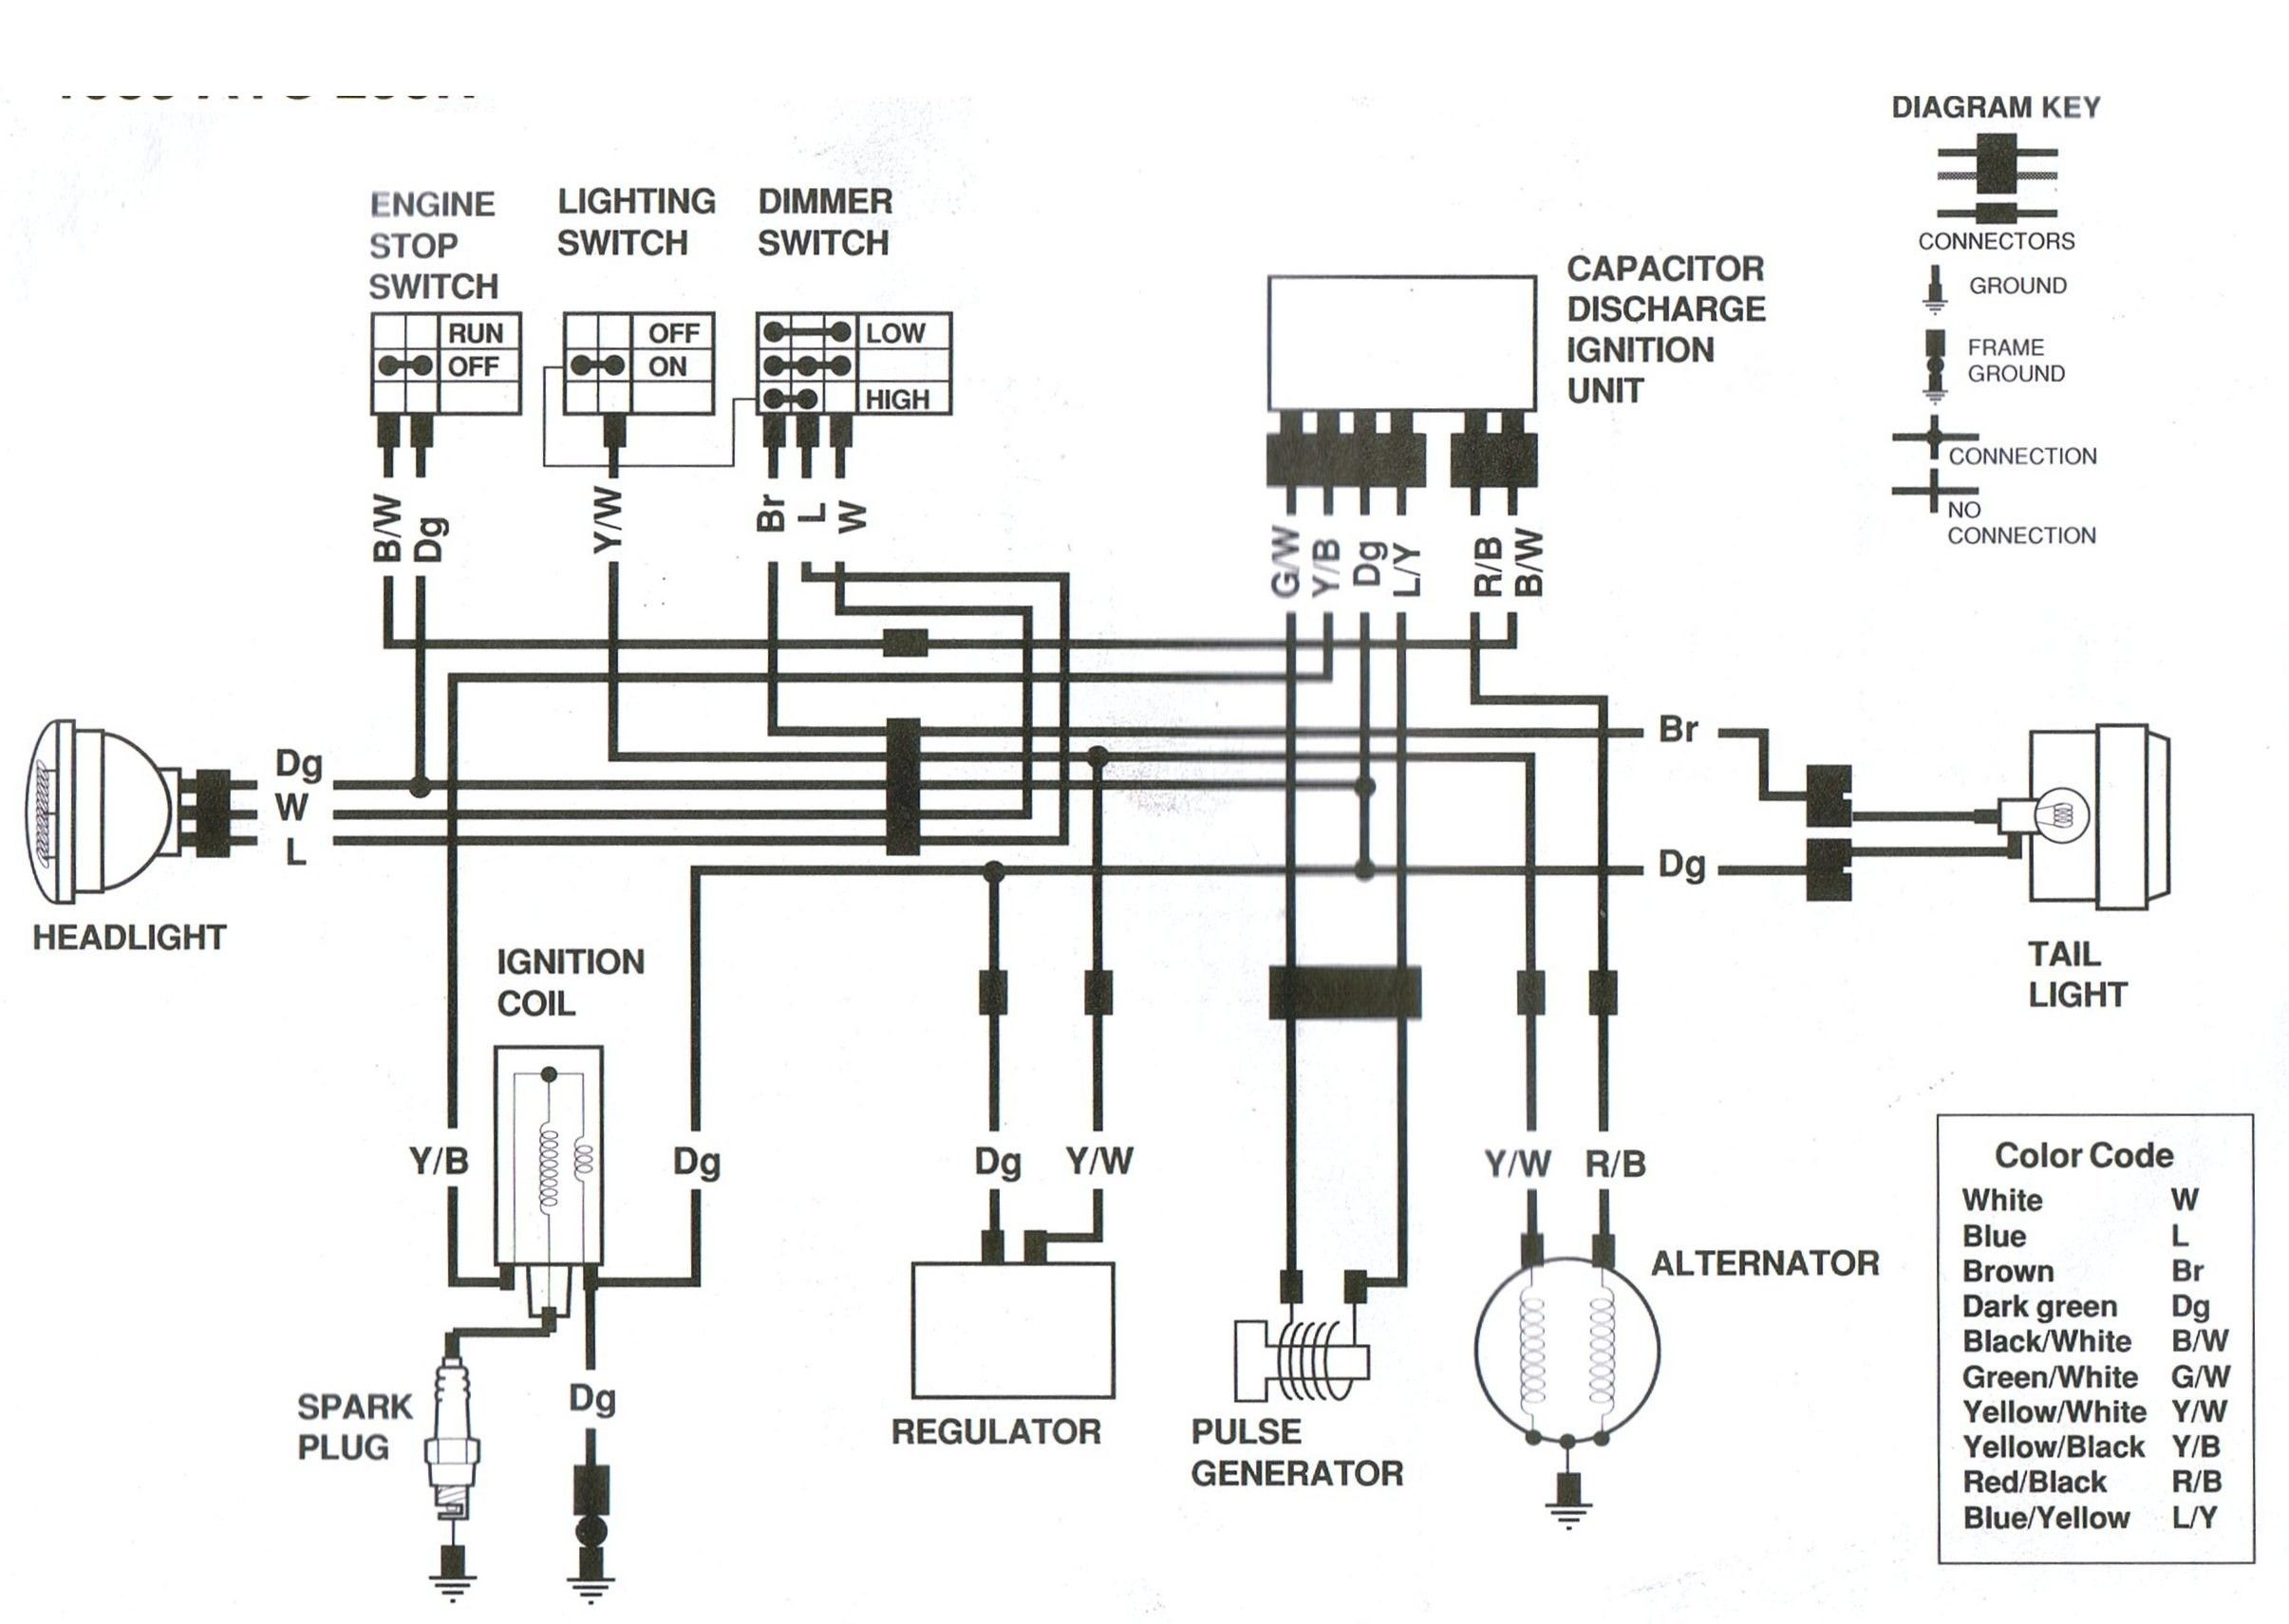 Atv Wire Diagram For Winch Motor In 2021 Electrical Wiring Diagram Motorcycle Wiring Wiring Diagram